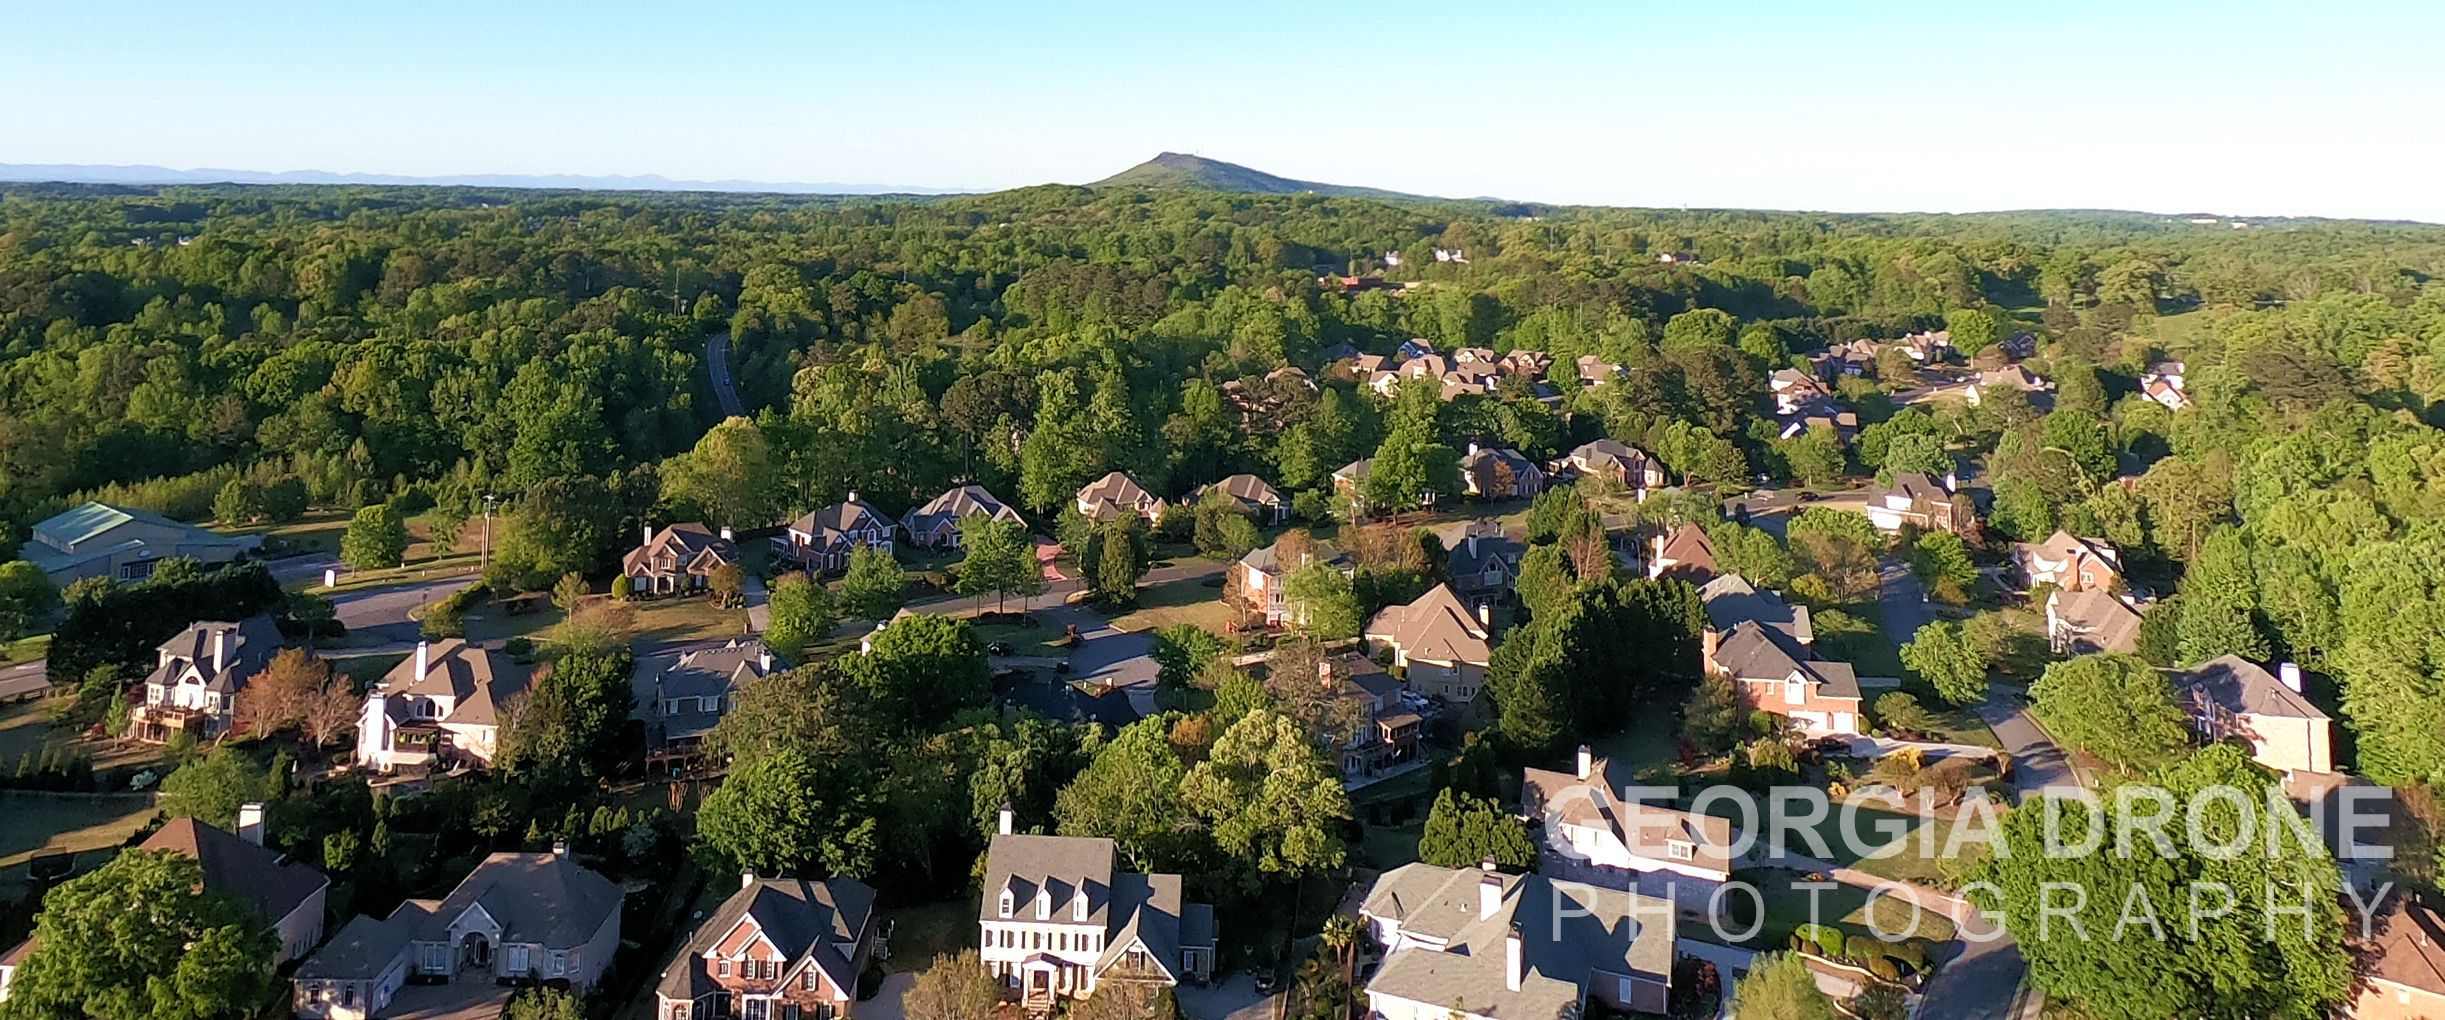 Drone photography of Sawnee Mountain in Cumming Georgia.